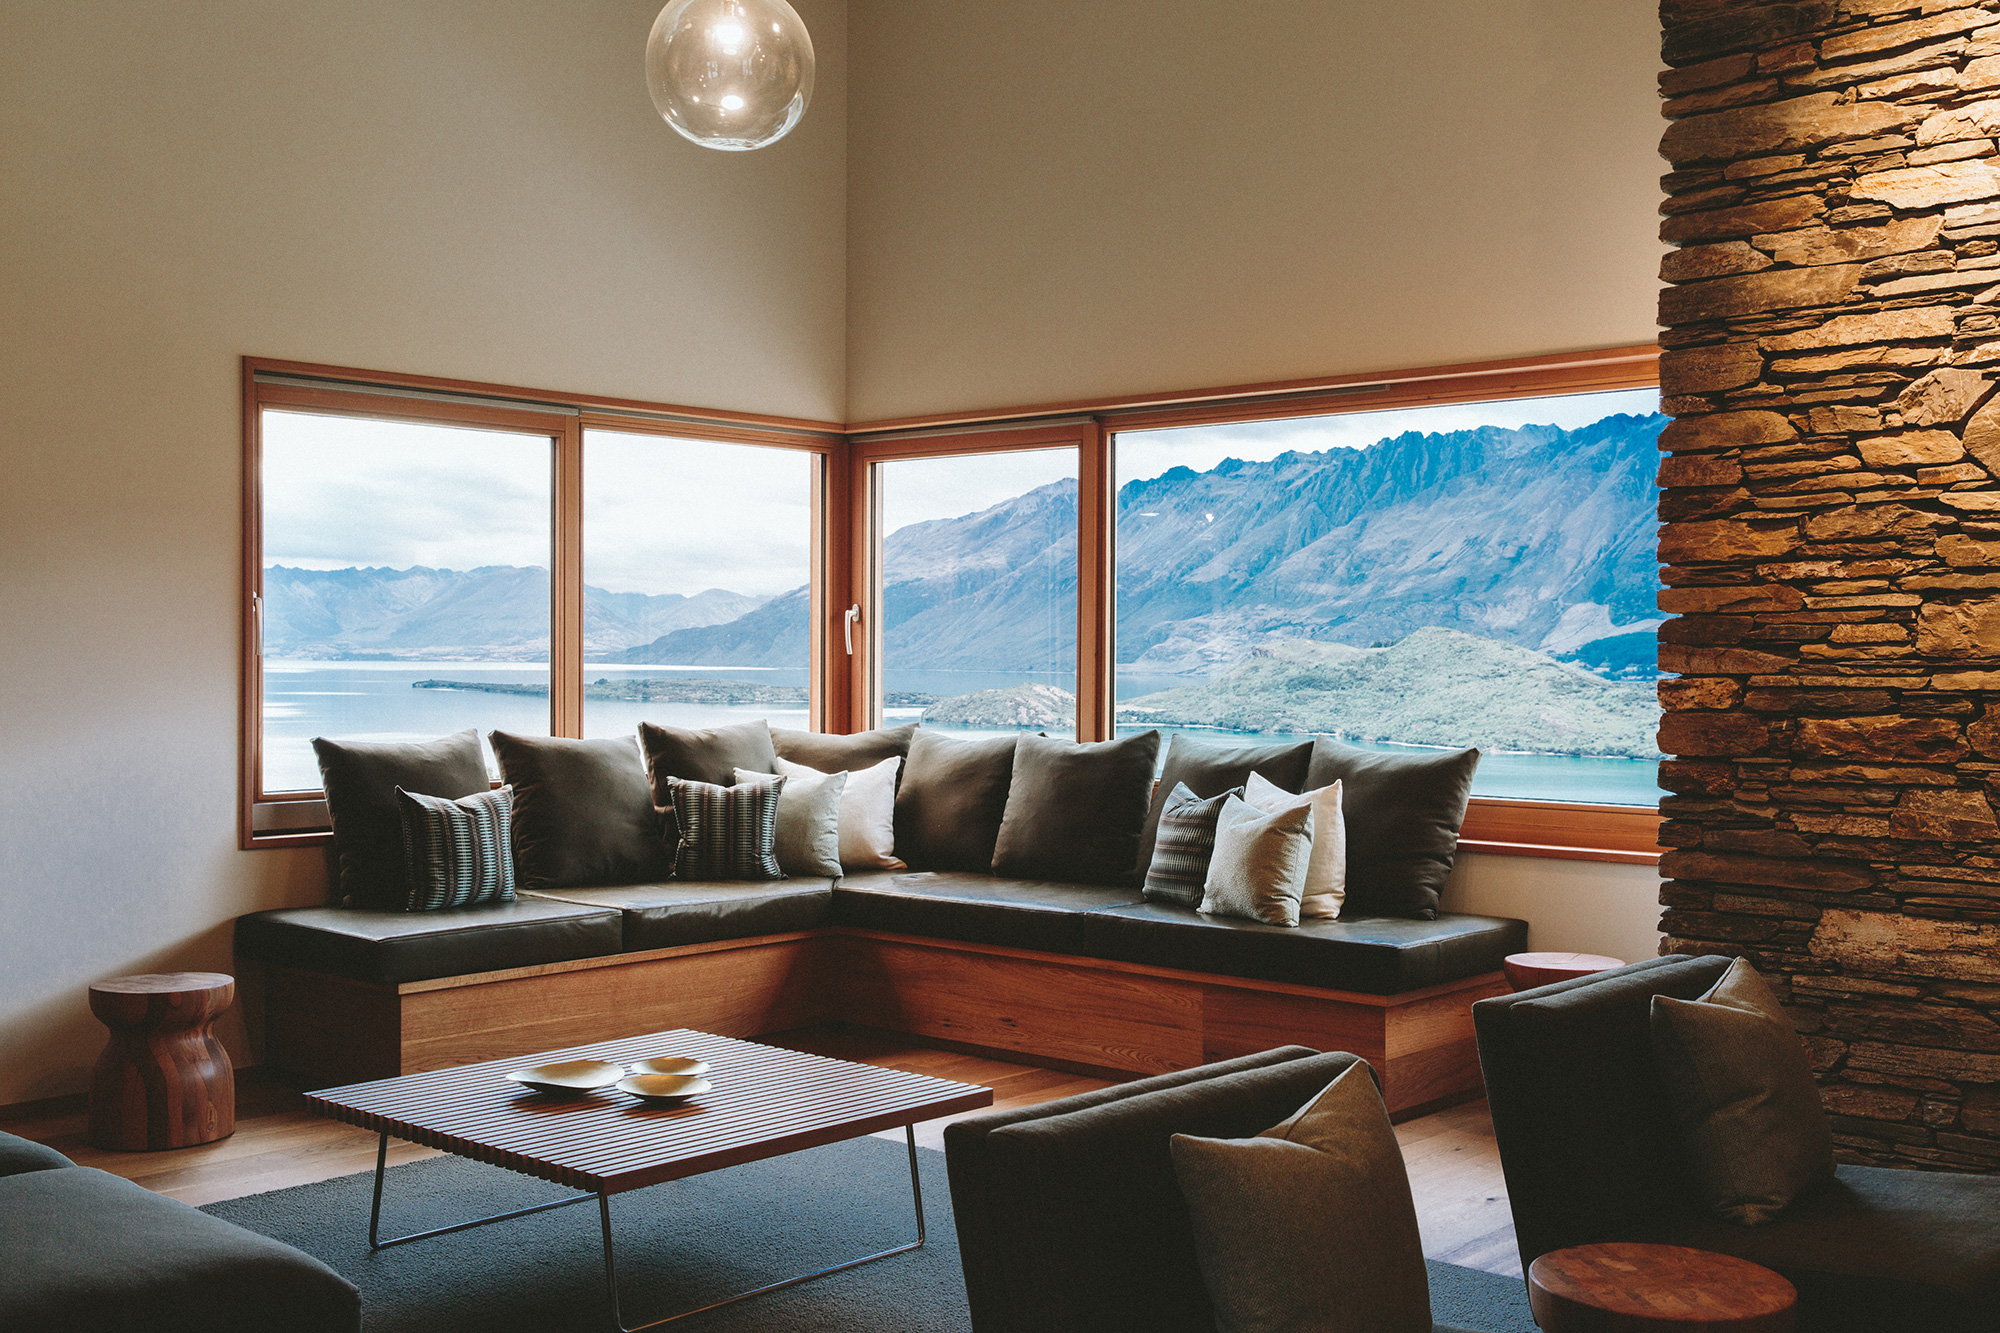 Living room setting with windows looking out at a mountain view